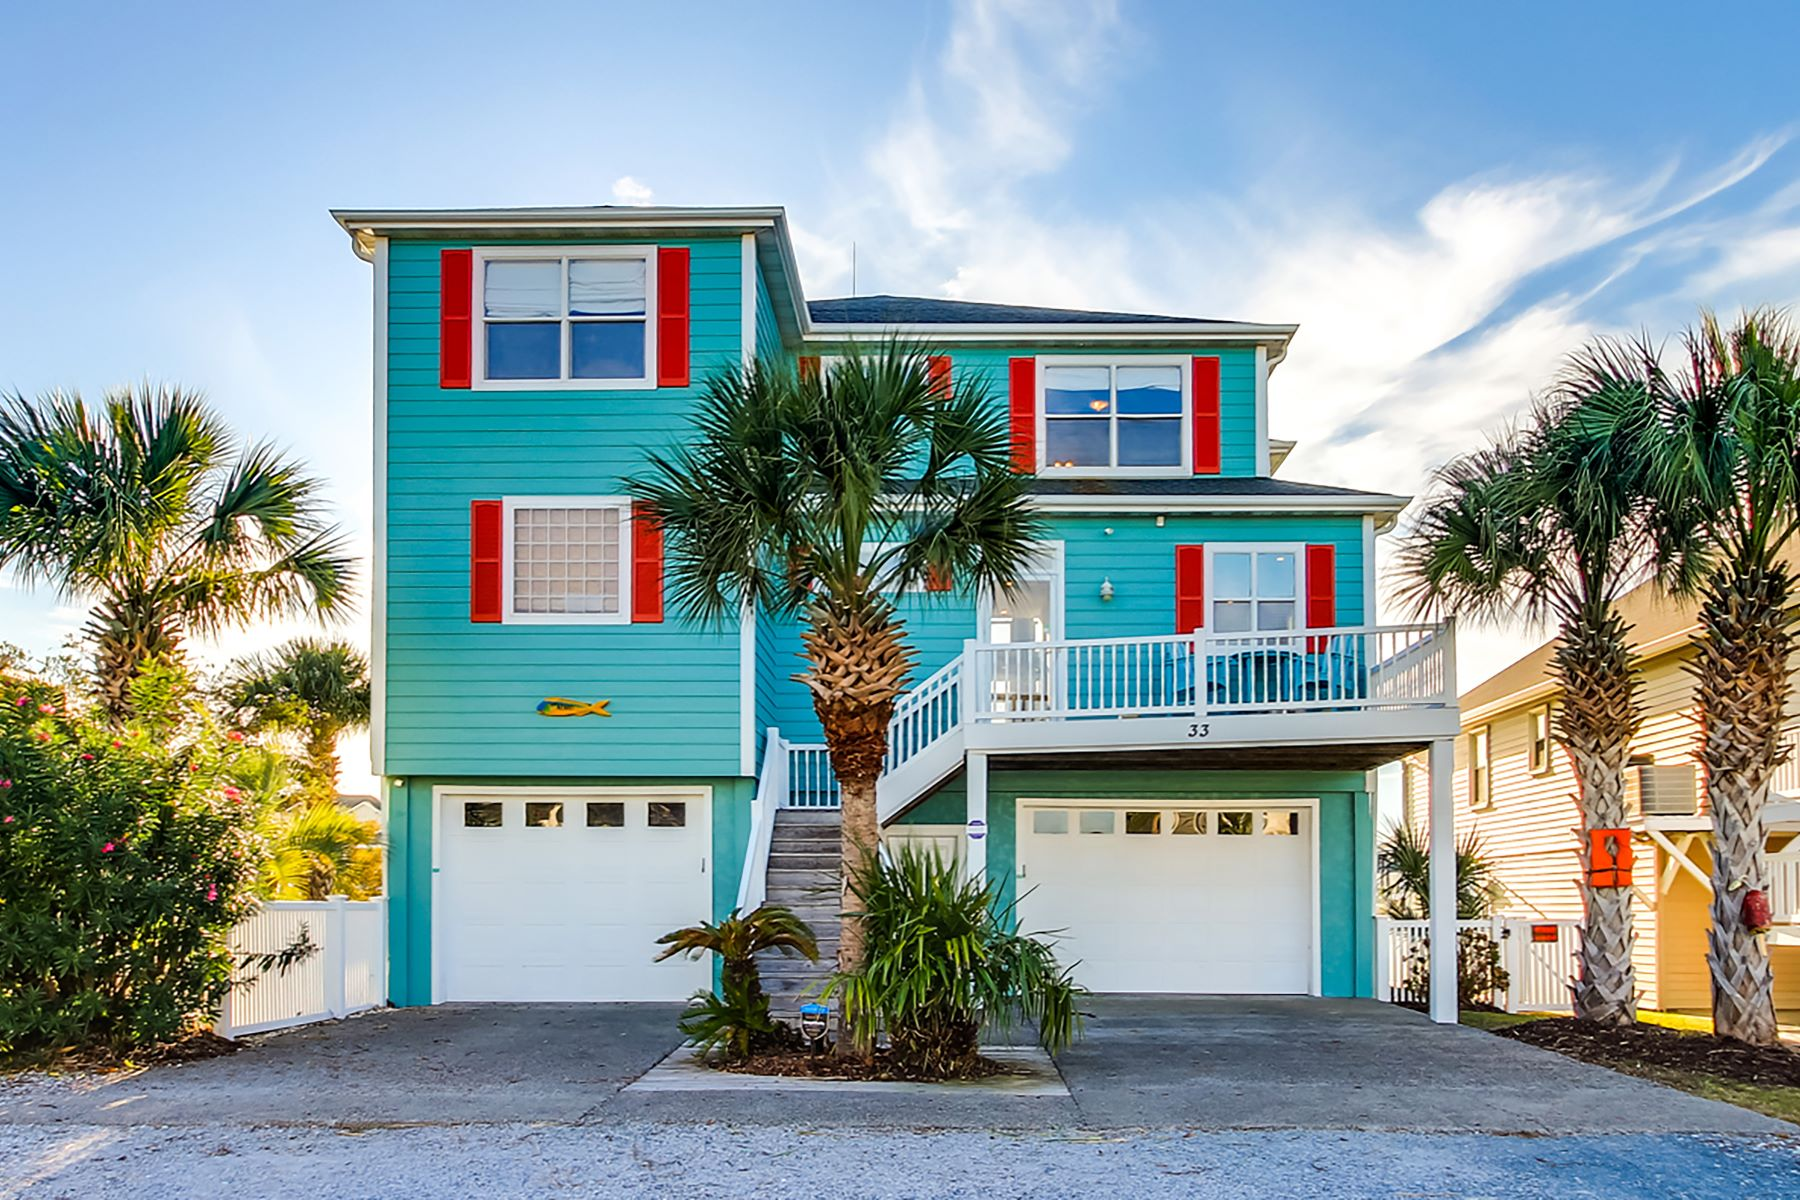 Single Family Homes for Active at The Perfect Oasis Surrounded by Water 33 Wilmington Street Ocean Isle Beach, North Carolina 28469 United States